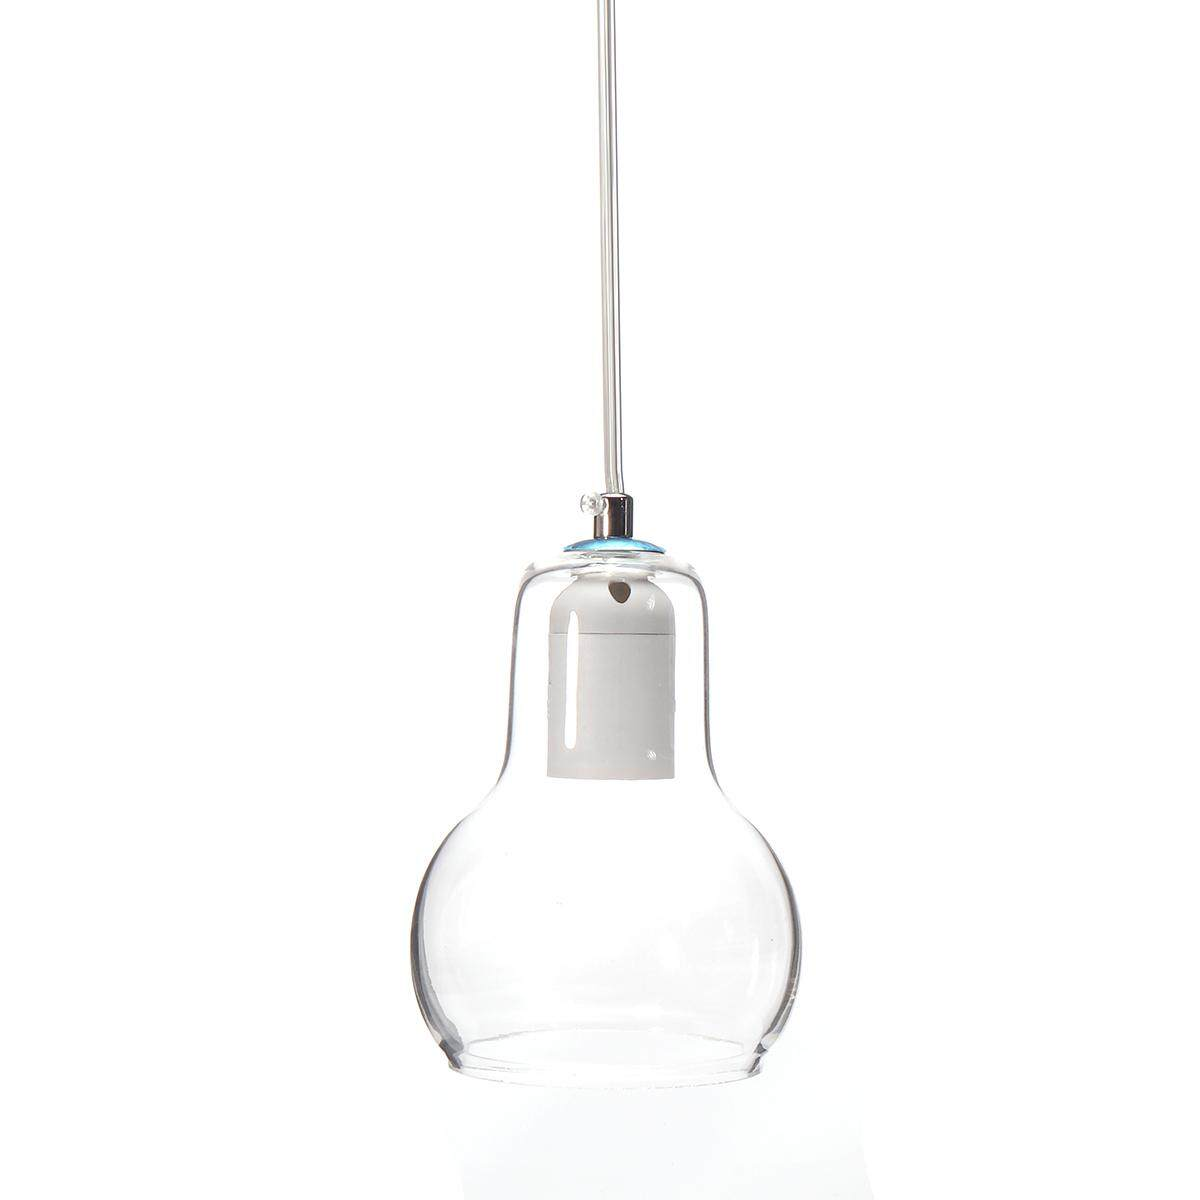 Modern Gourd Glass Pendant Lamp Ceiling Lights Bar Chandeliers Fixtures 2504HC # Clear - intl